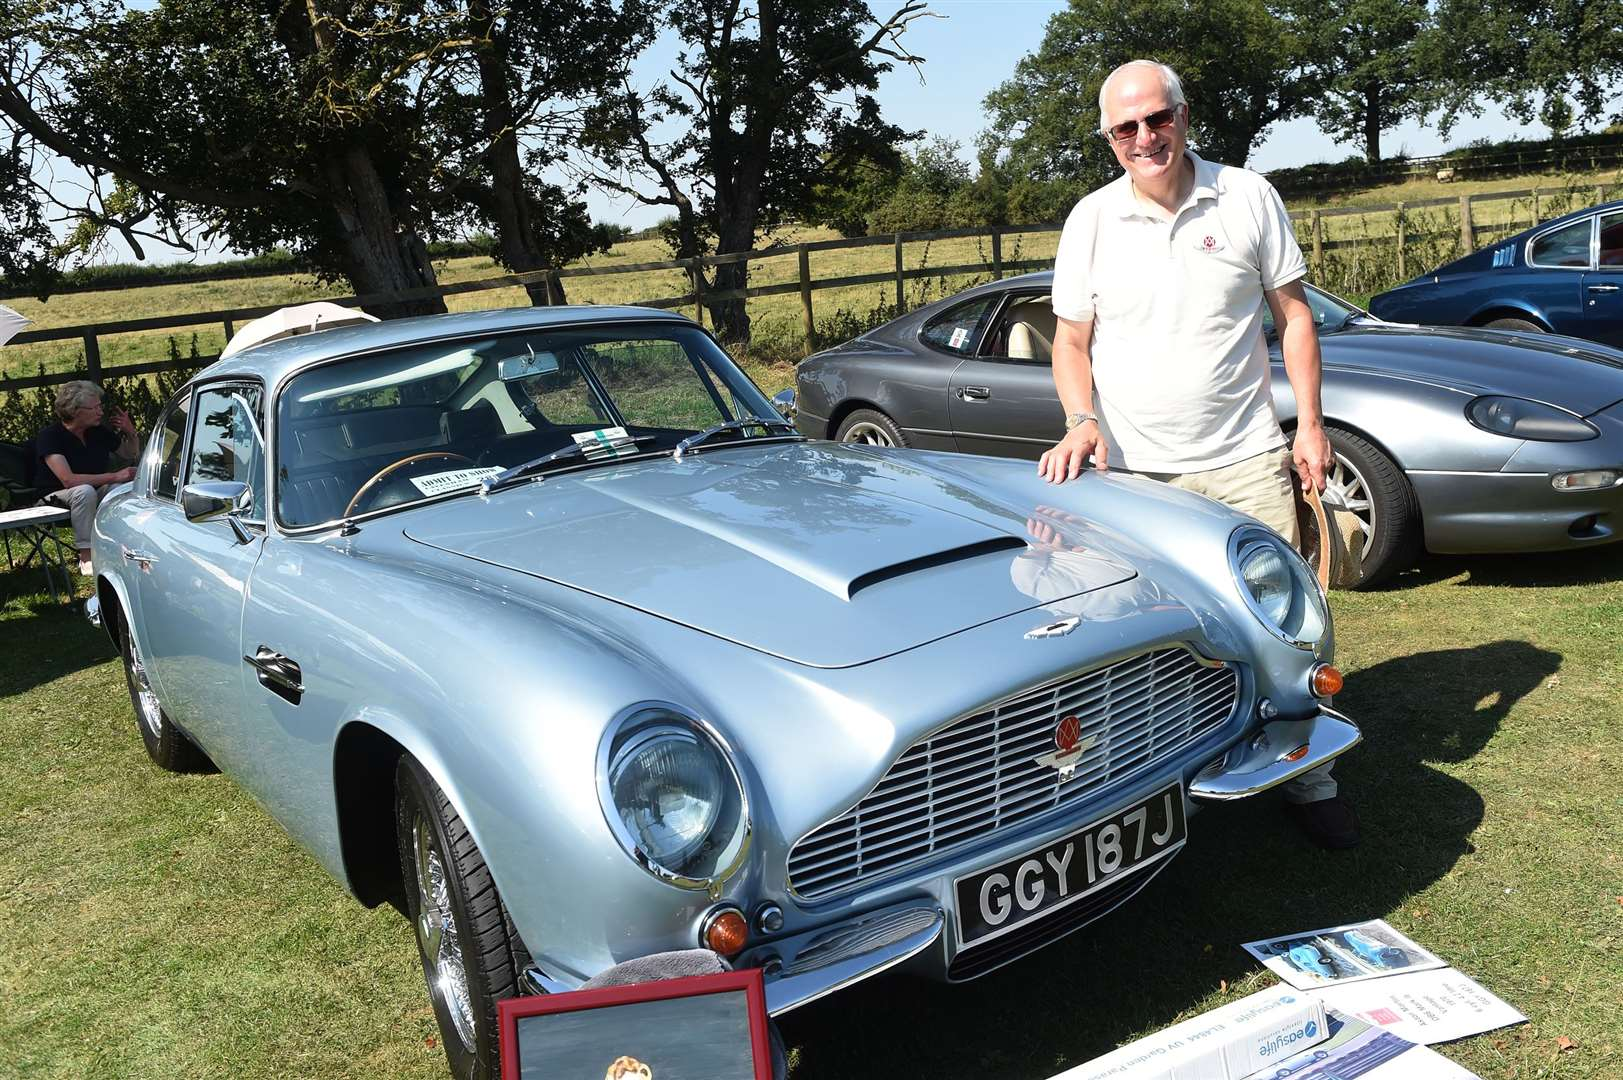 Colin Palmer at the show with his 1970 Aston Martin DB6 MK 2